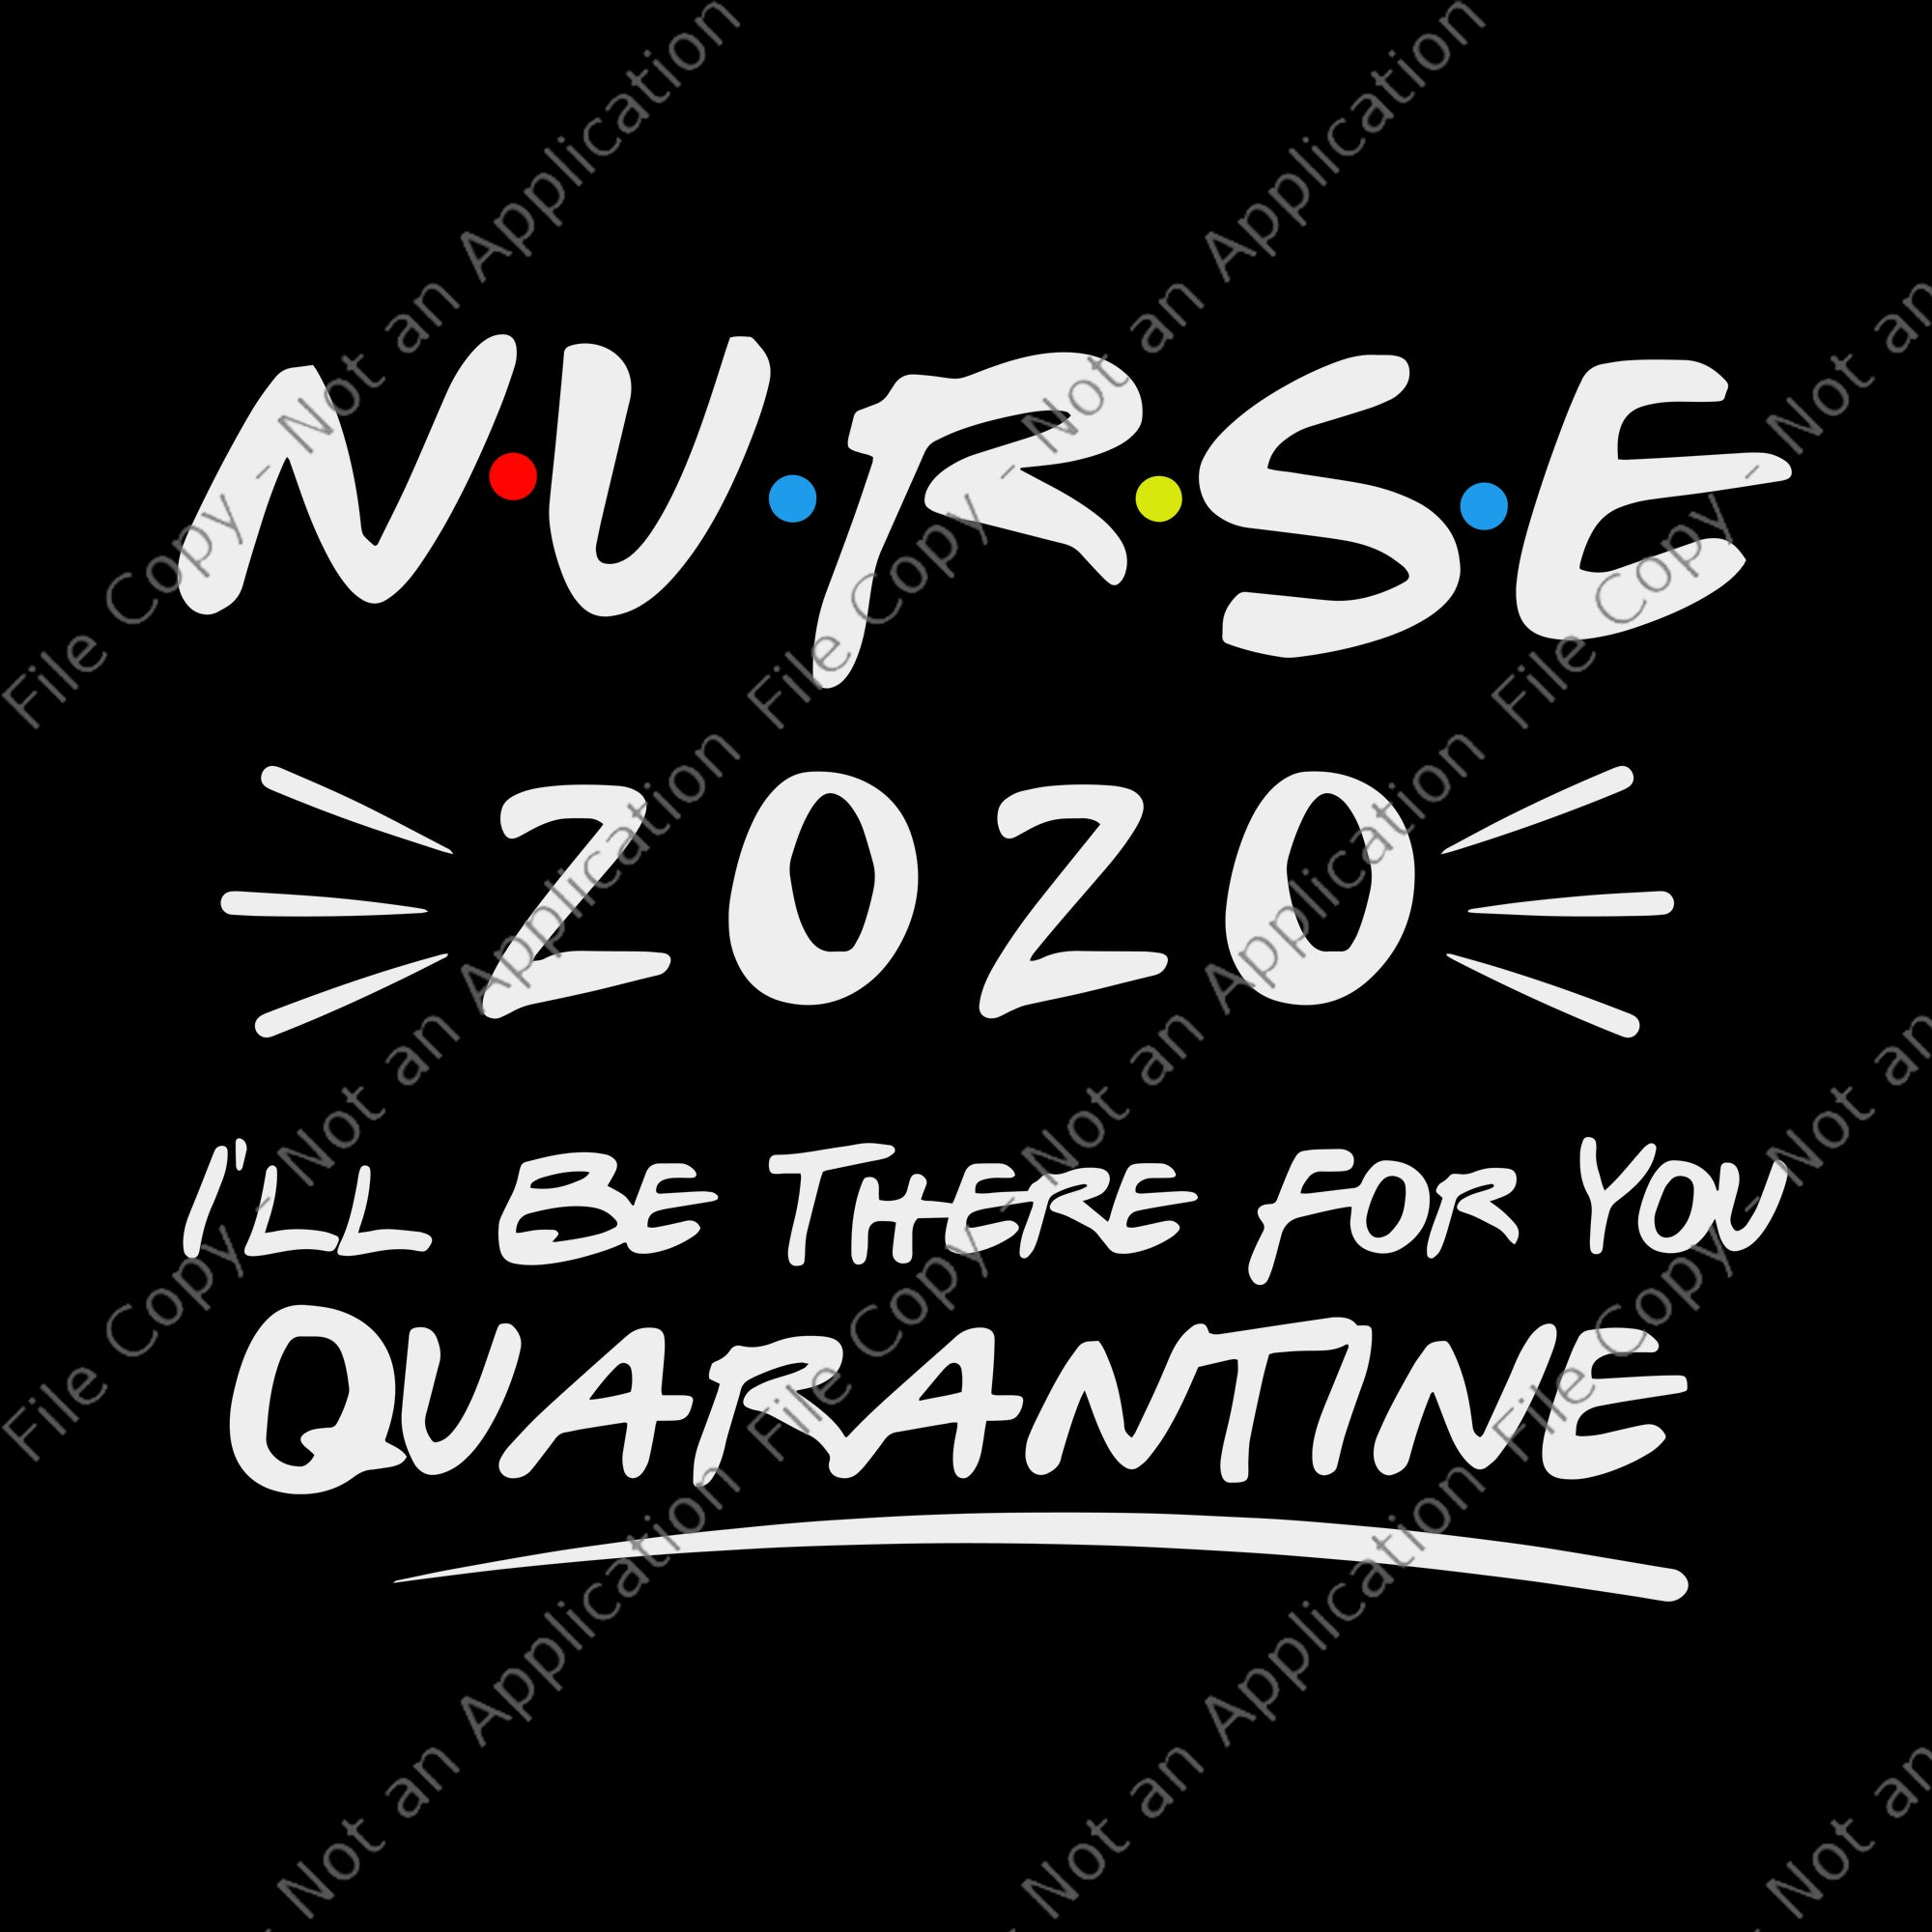 Nurse 2020 svg, nurse i'll be there for you 2020 quarantine svg, nurse svg, nurse 2020 svg